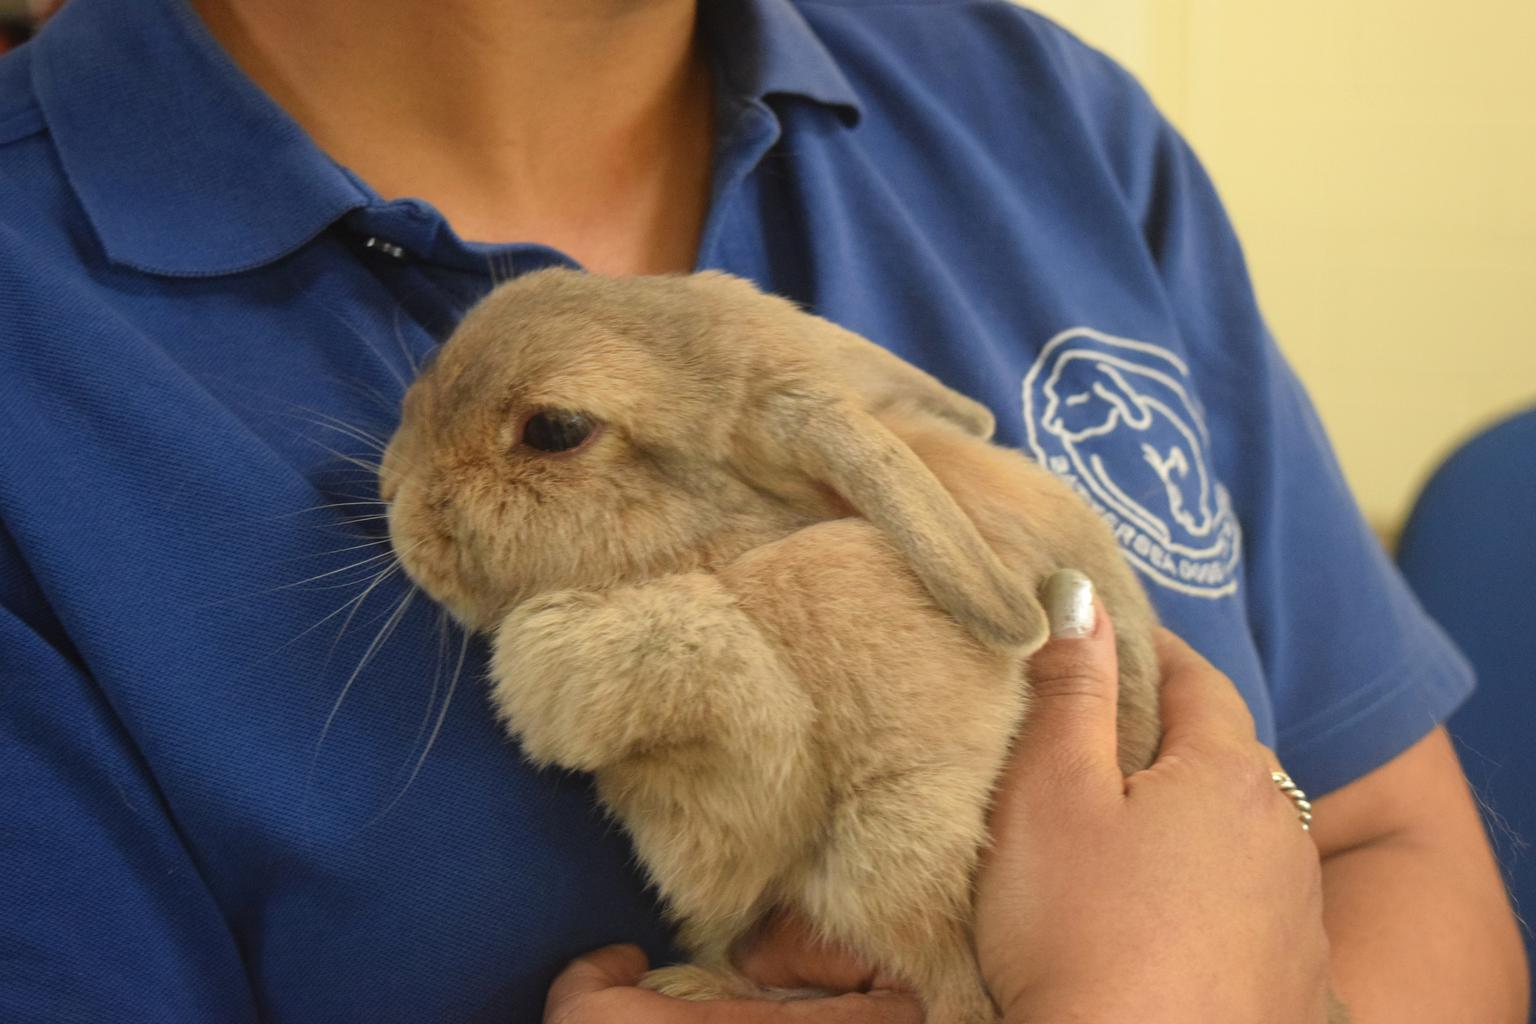 Pearl the rabbit was reunited with her owner by Battersea. Tags: Battersea Dogs & Cats Home cat charity dog rabbit